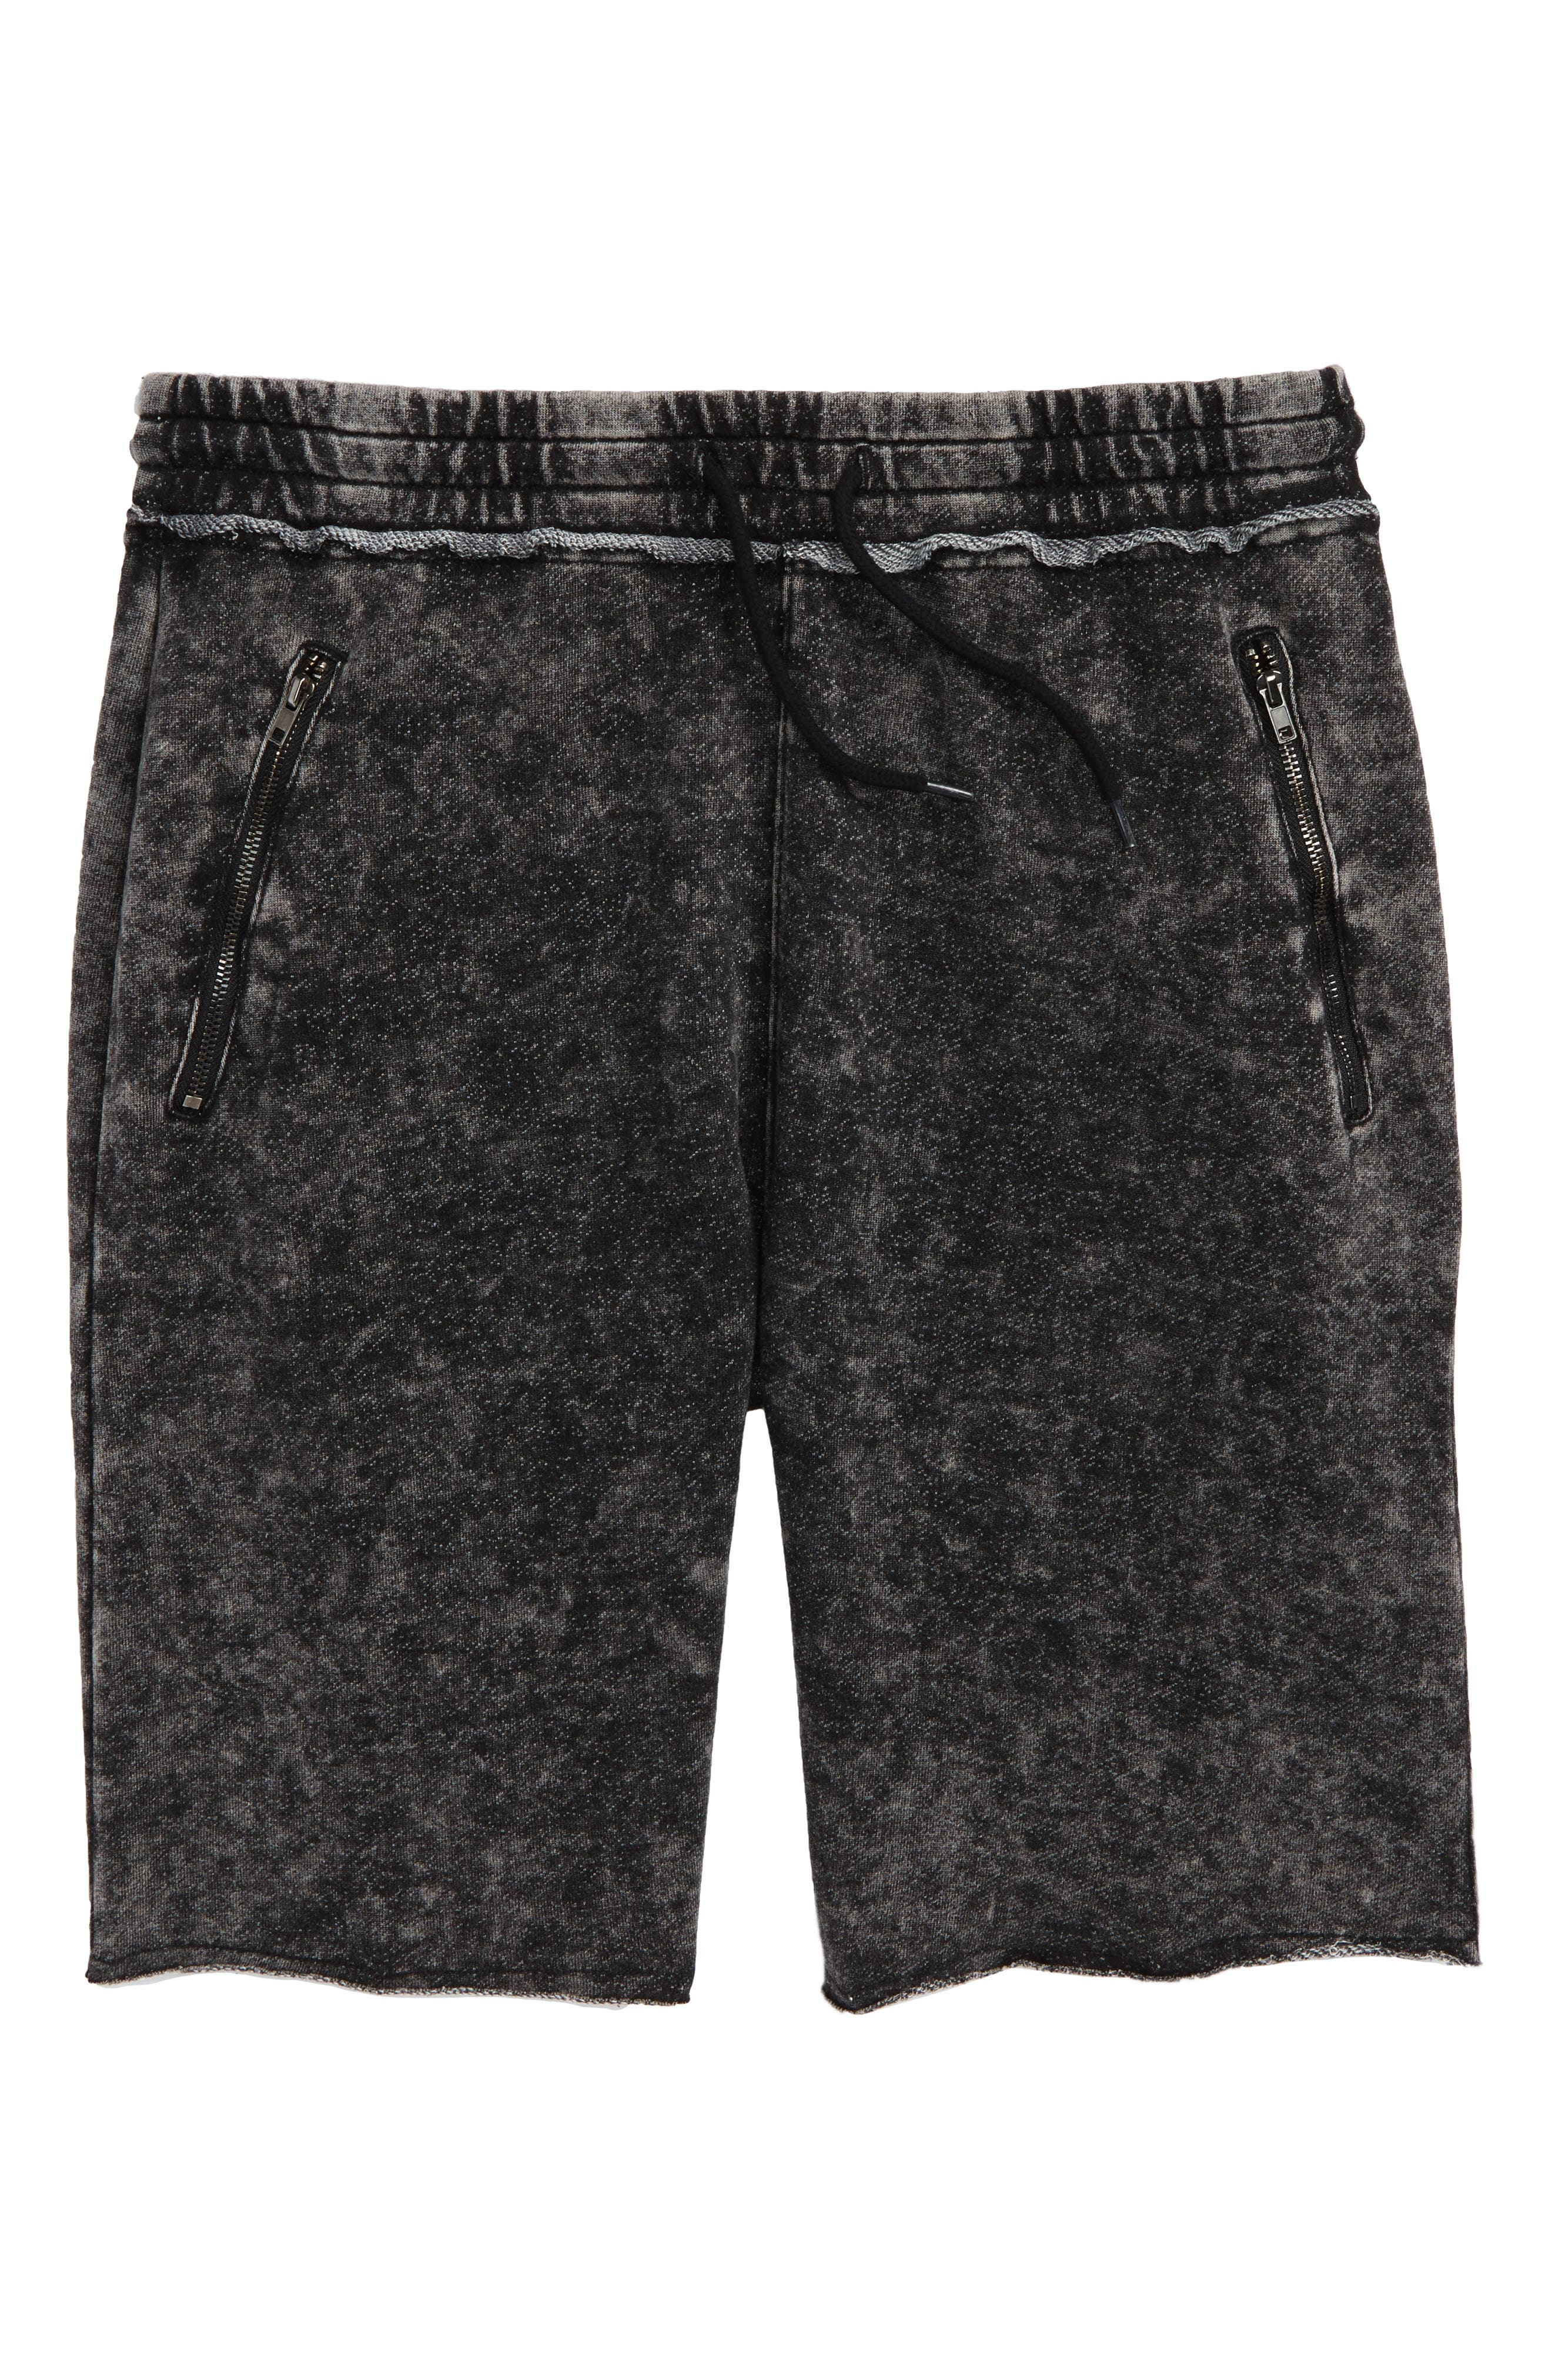 Raw Edge Knit Shorts,                             Main thumbnail 1, color,                             001